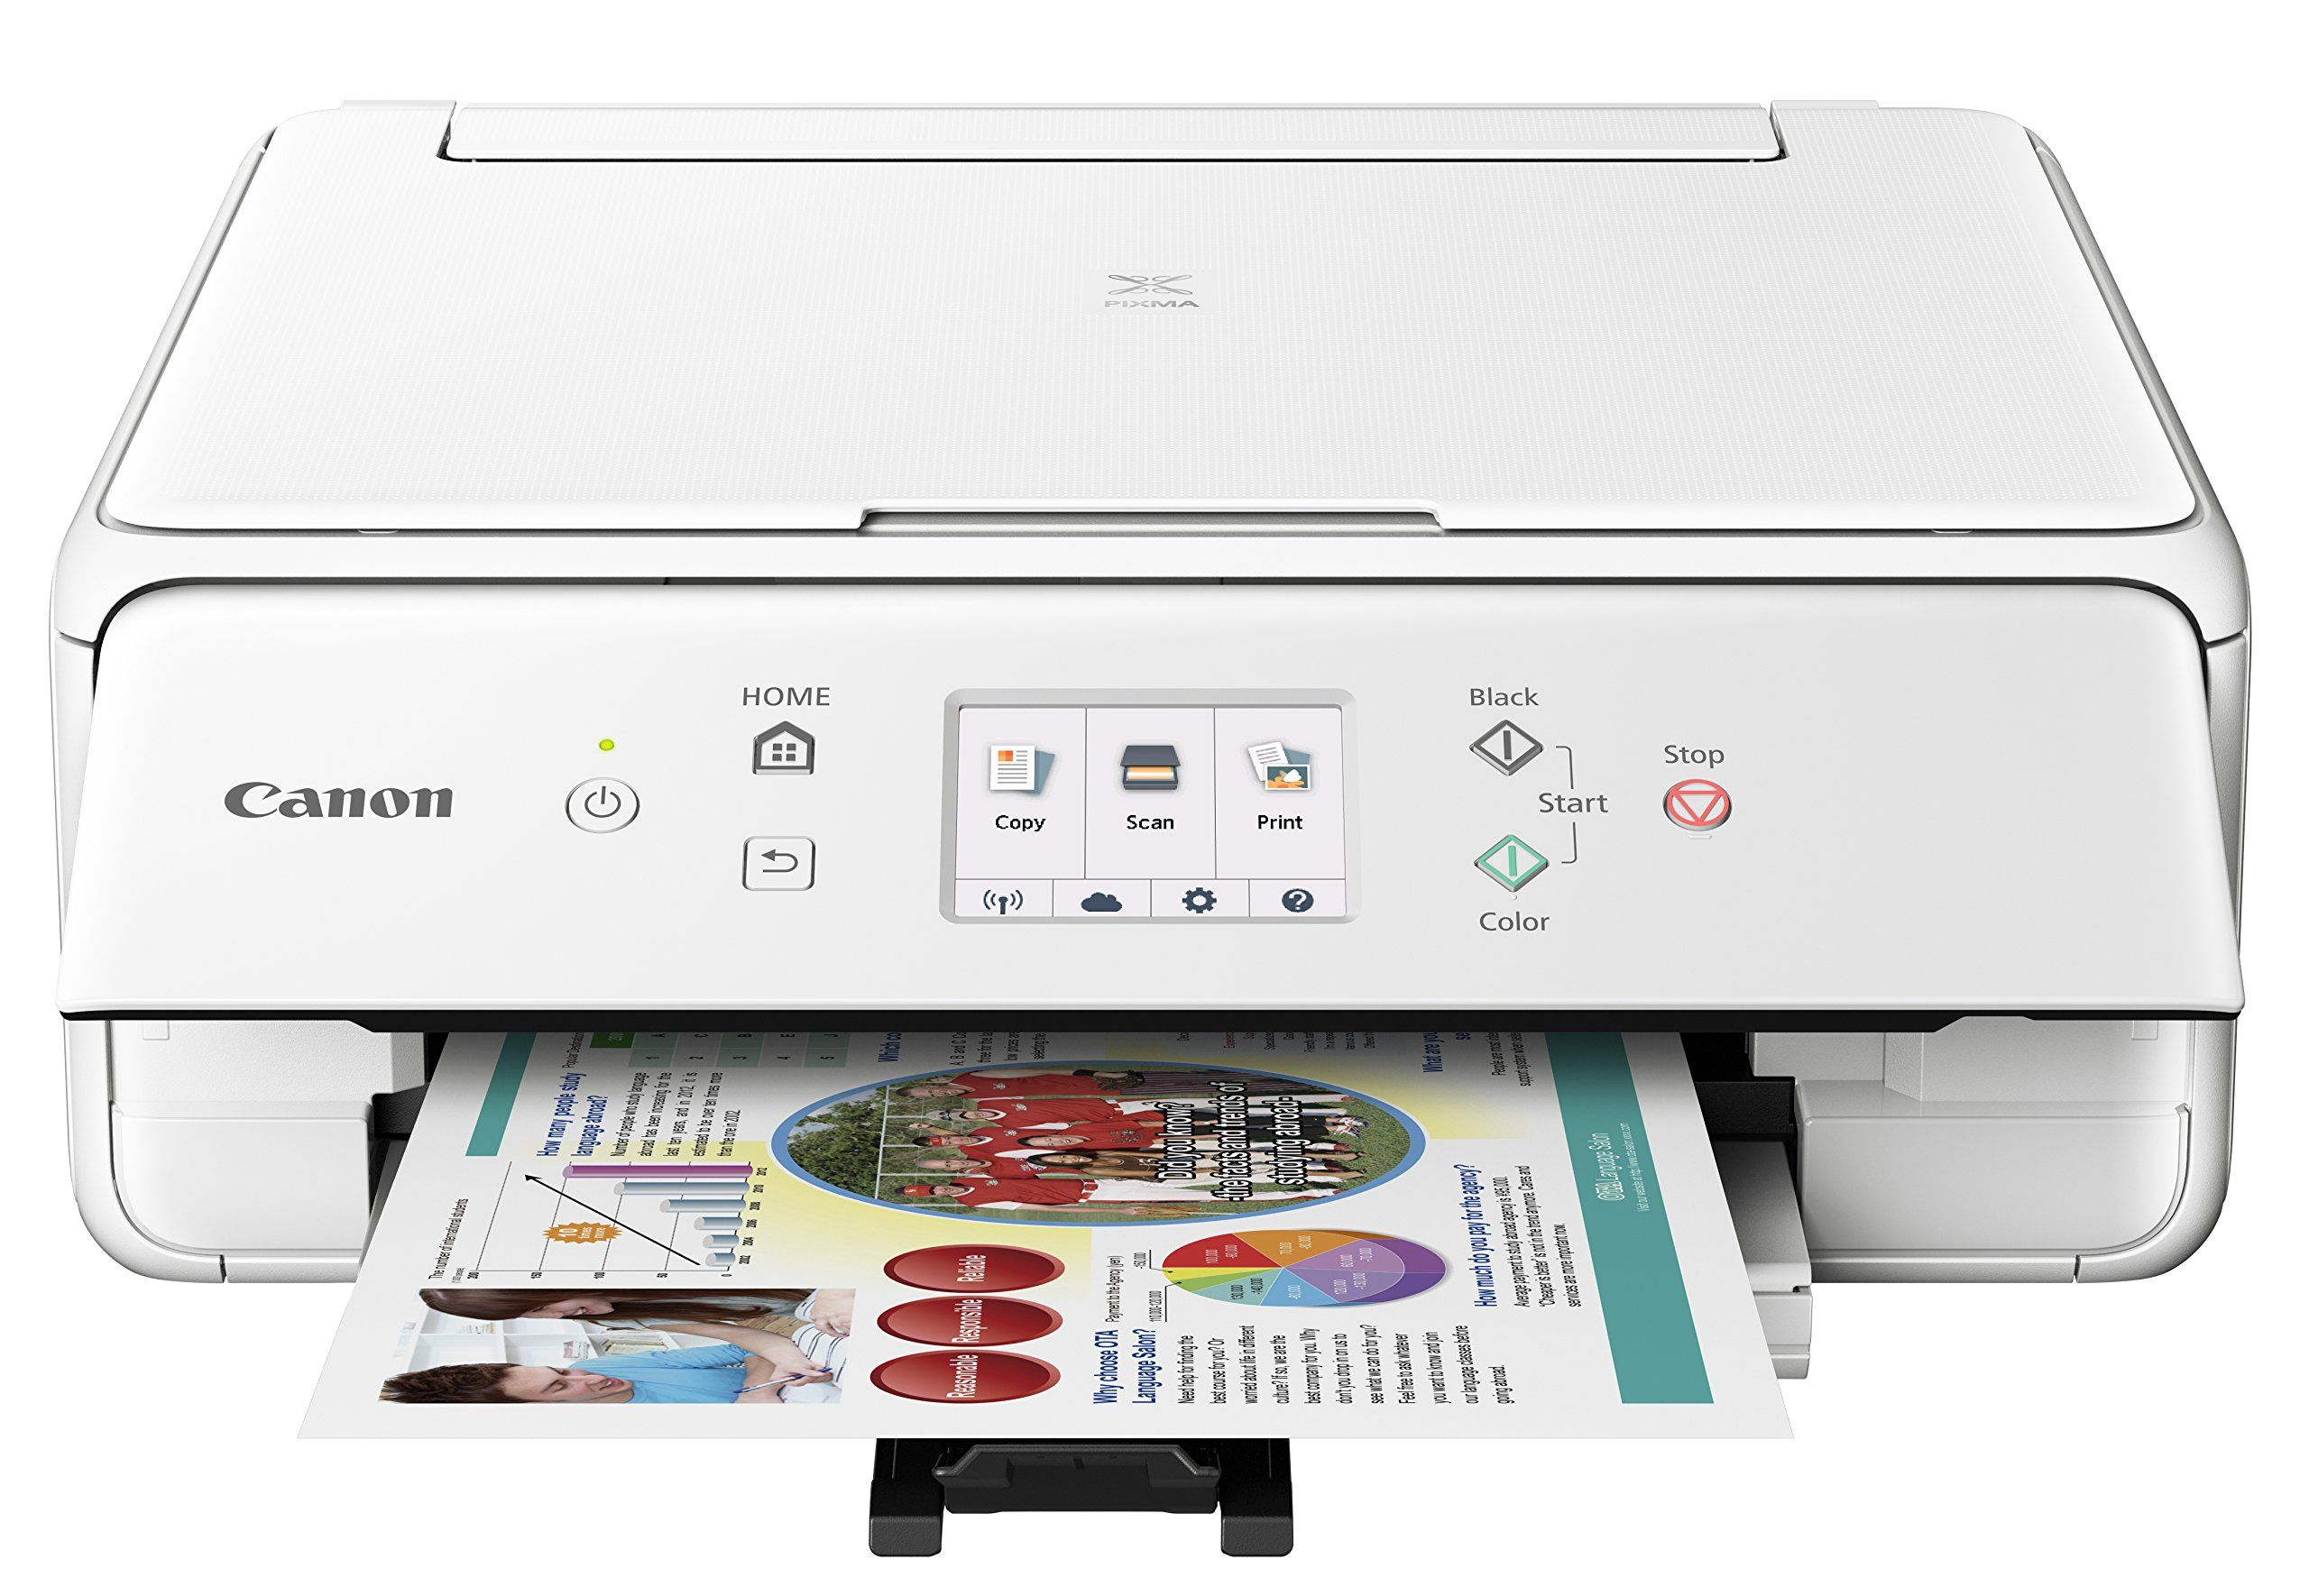 Canon Compact TS6020 Wireless Home Inkjet All-in-One Printer, Copier ...